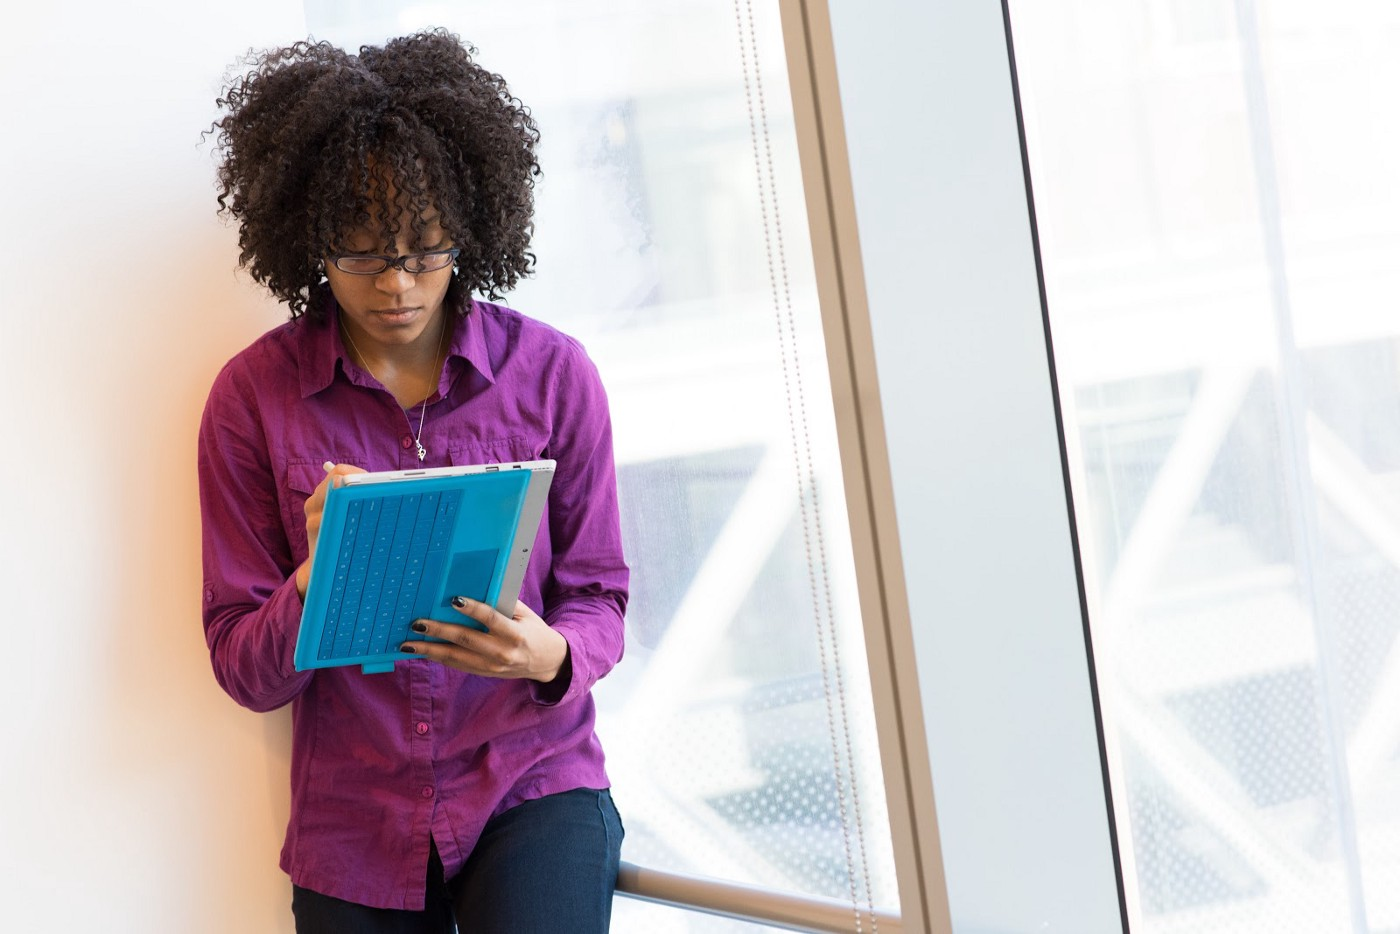 Black woman with curly hair wearing glasses and a purple button down shirt stands in front of a wall writing on a tab